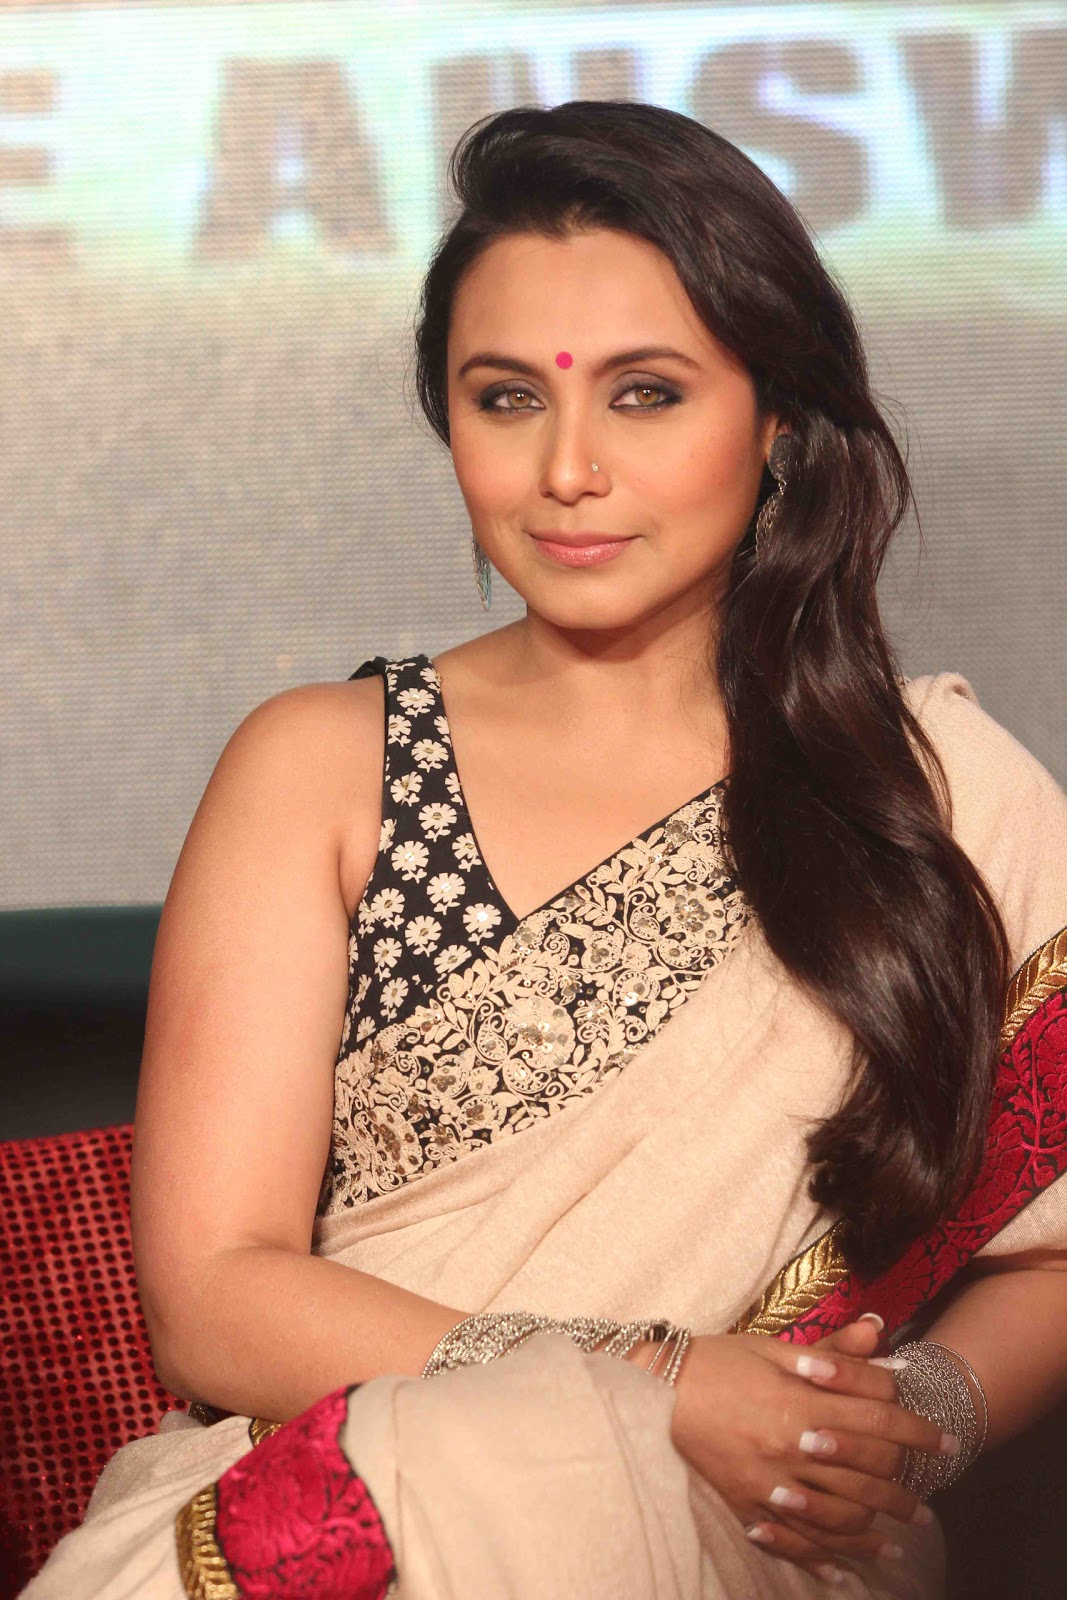 Rani Mukherjee Looks Beautiful In Saree At 'Talaash' Movie Music Launch